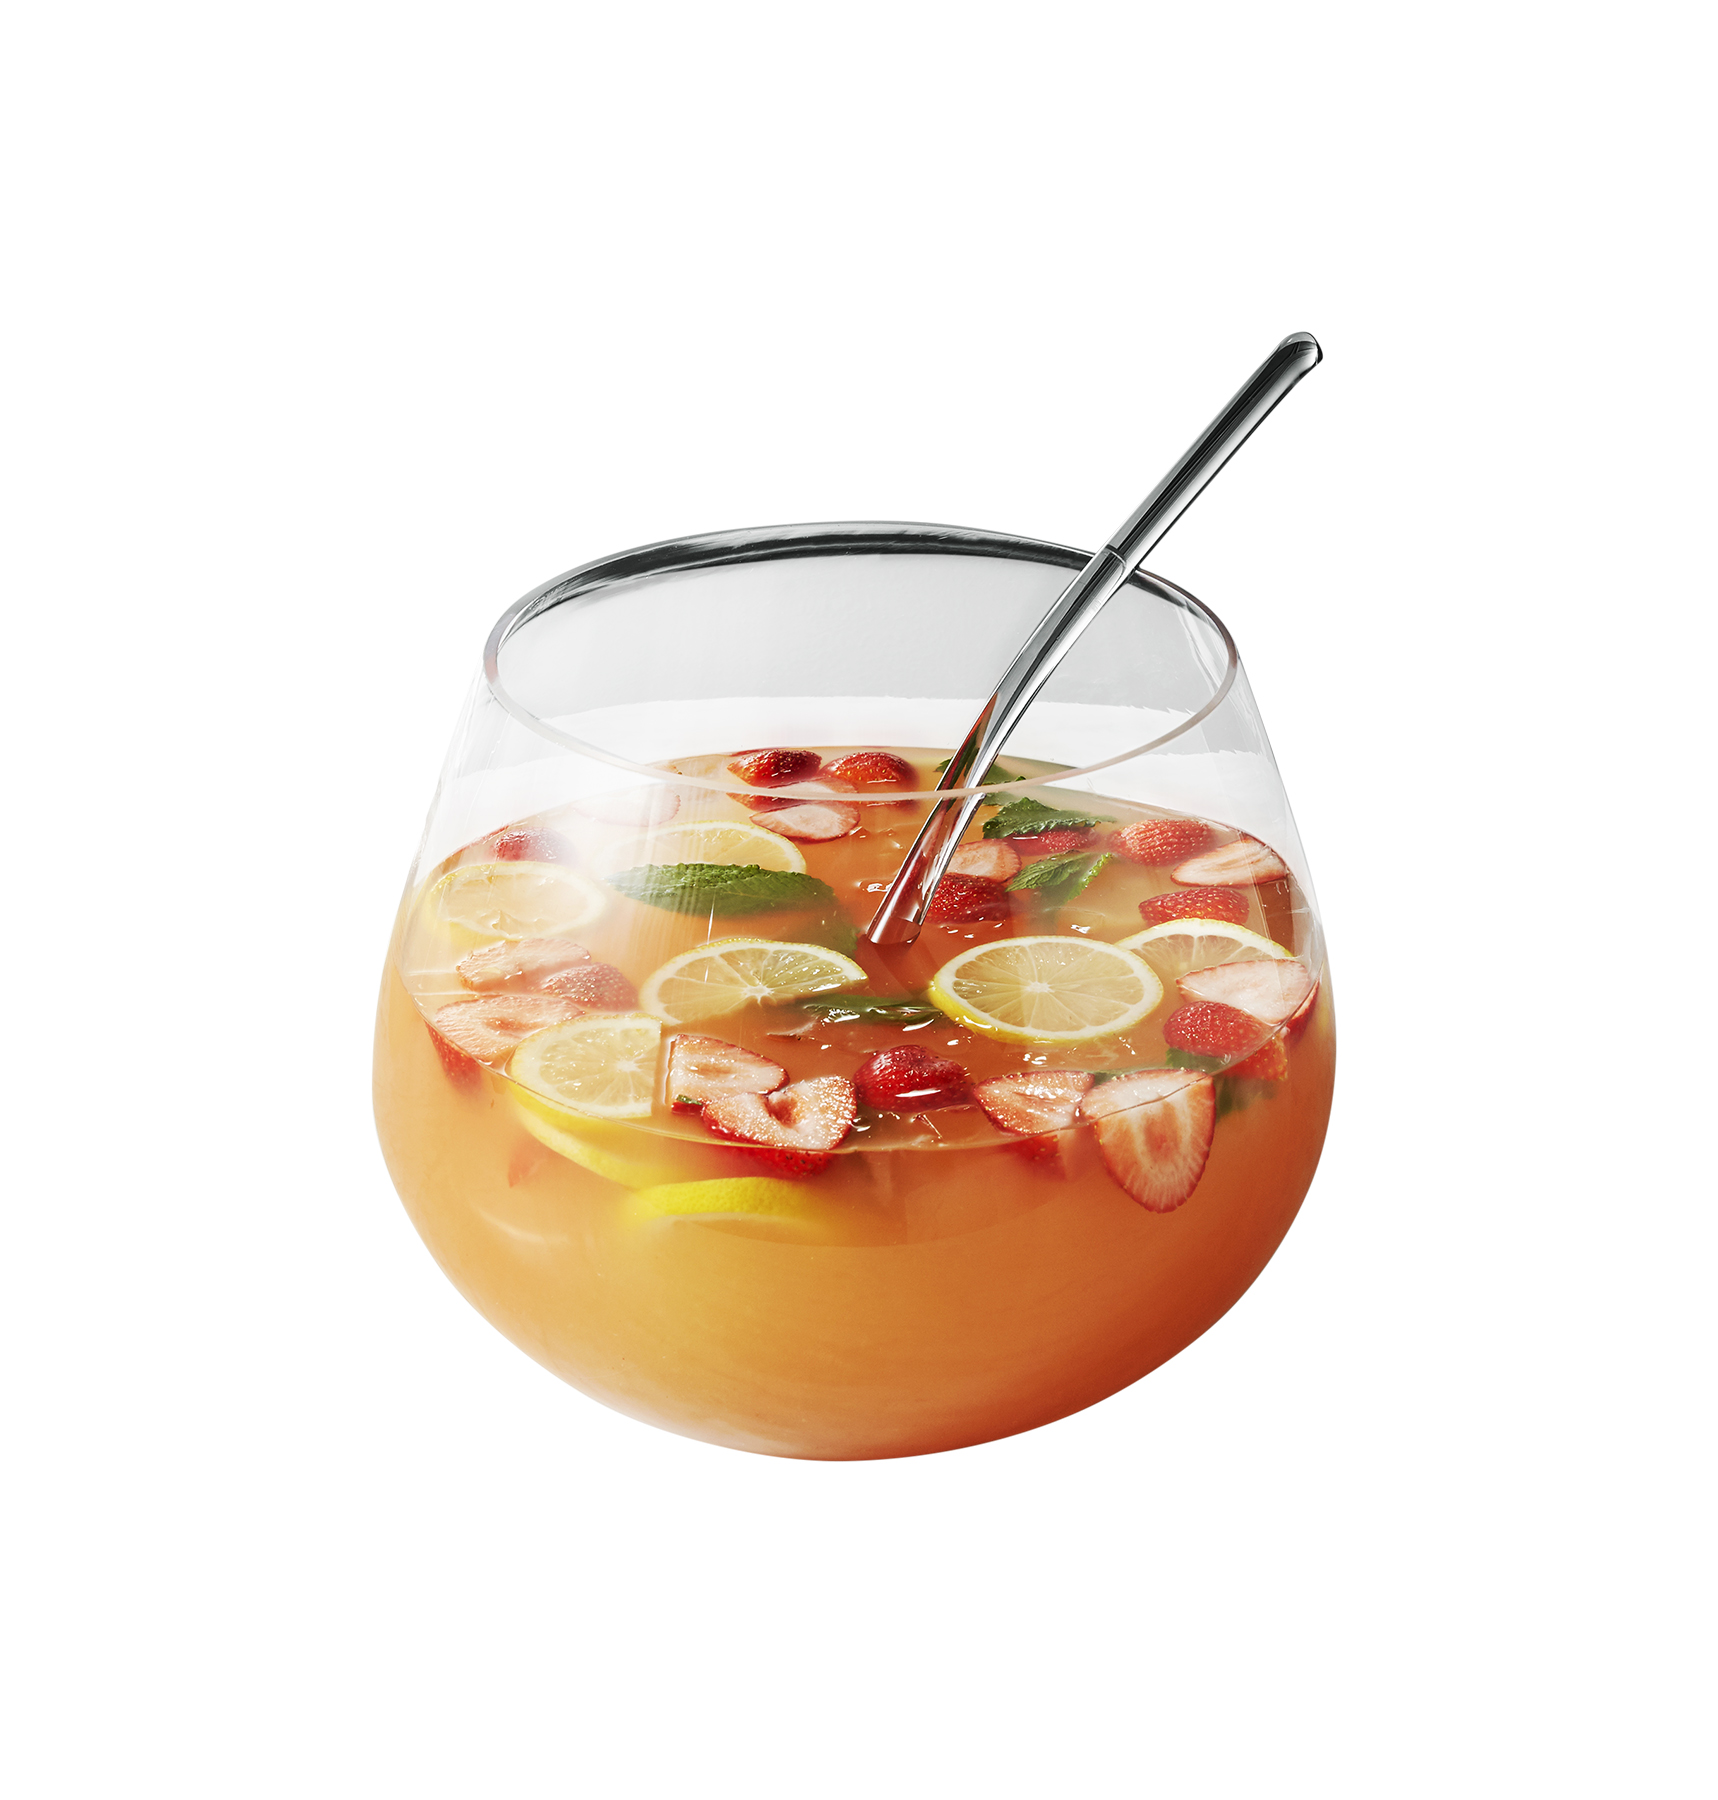 CB2 Punch Bowl with Ladle